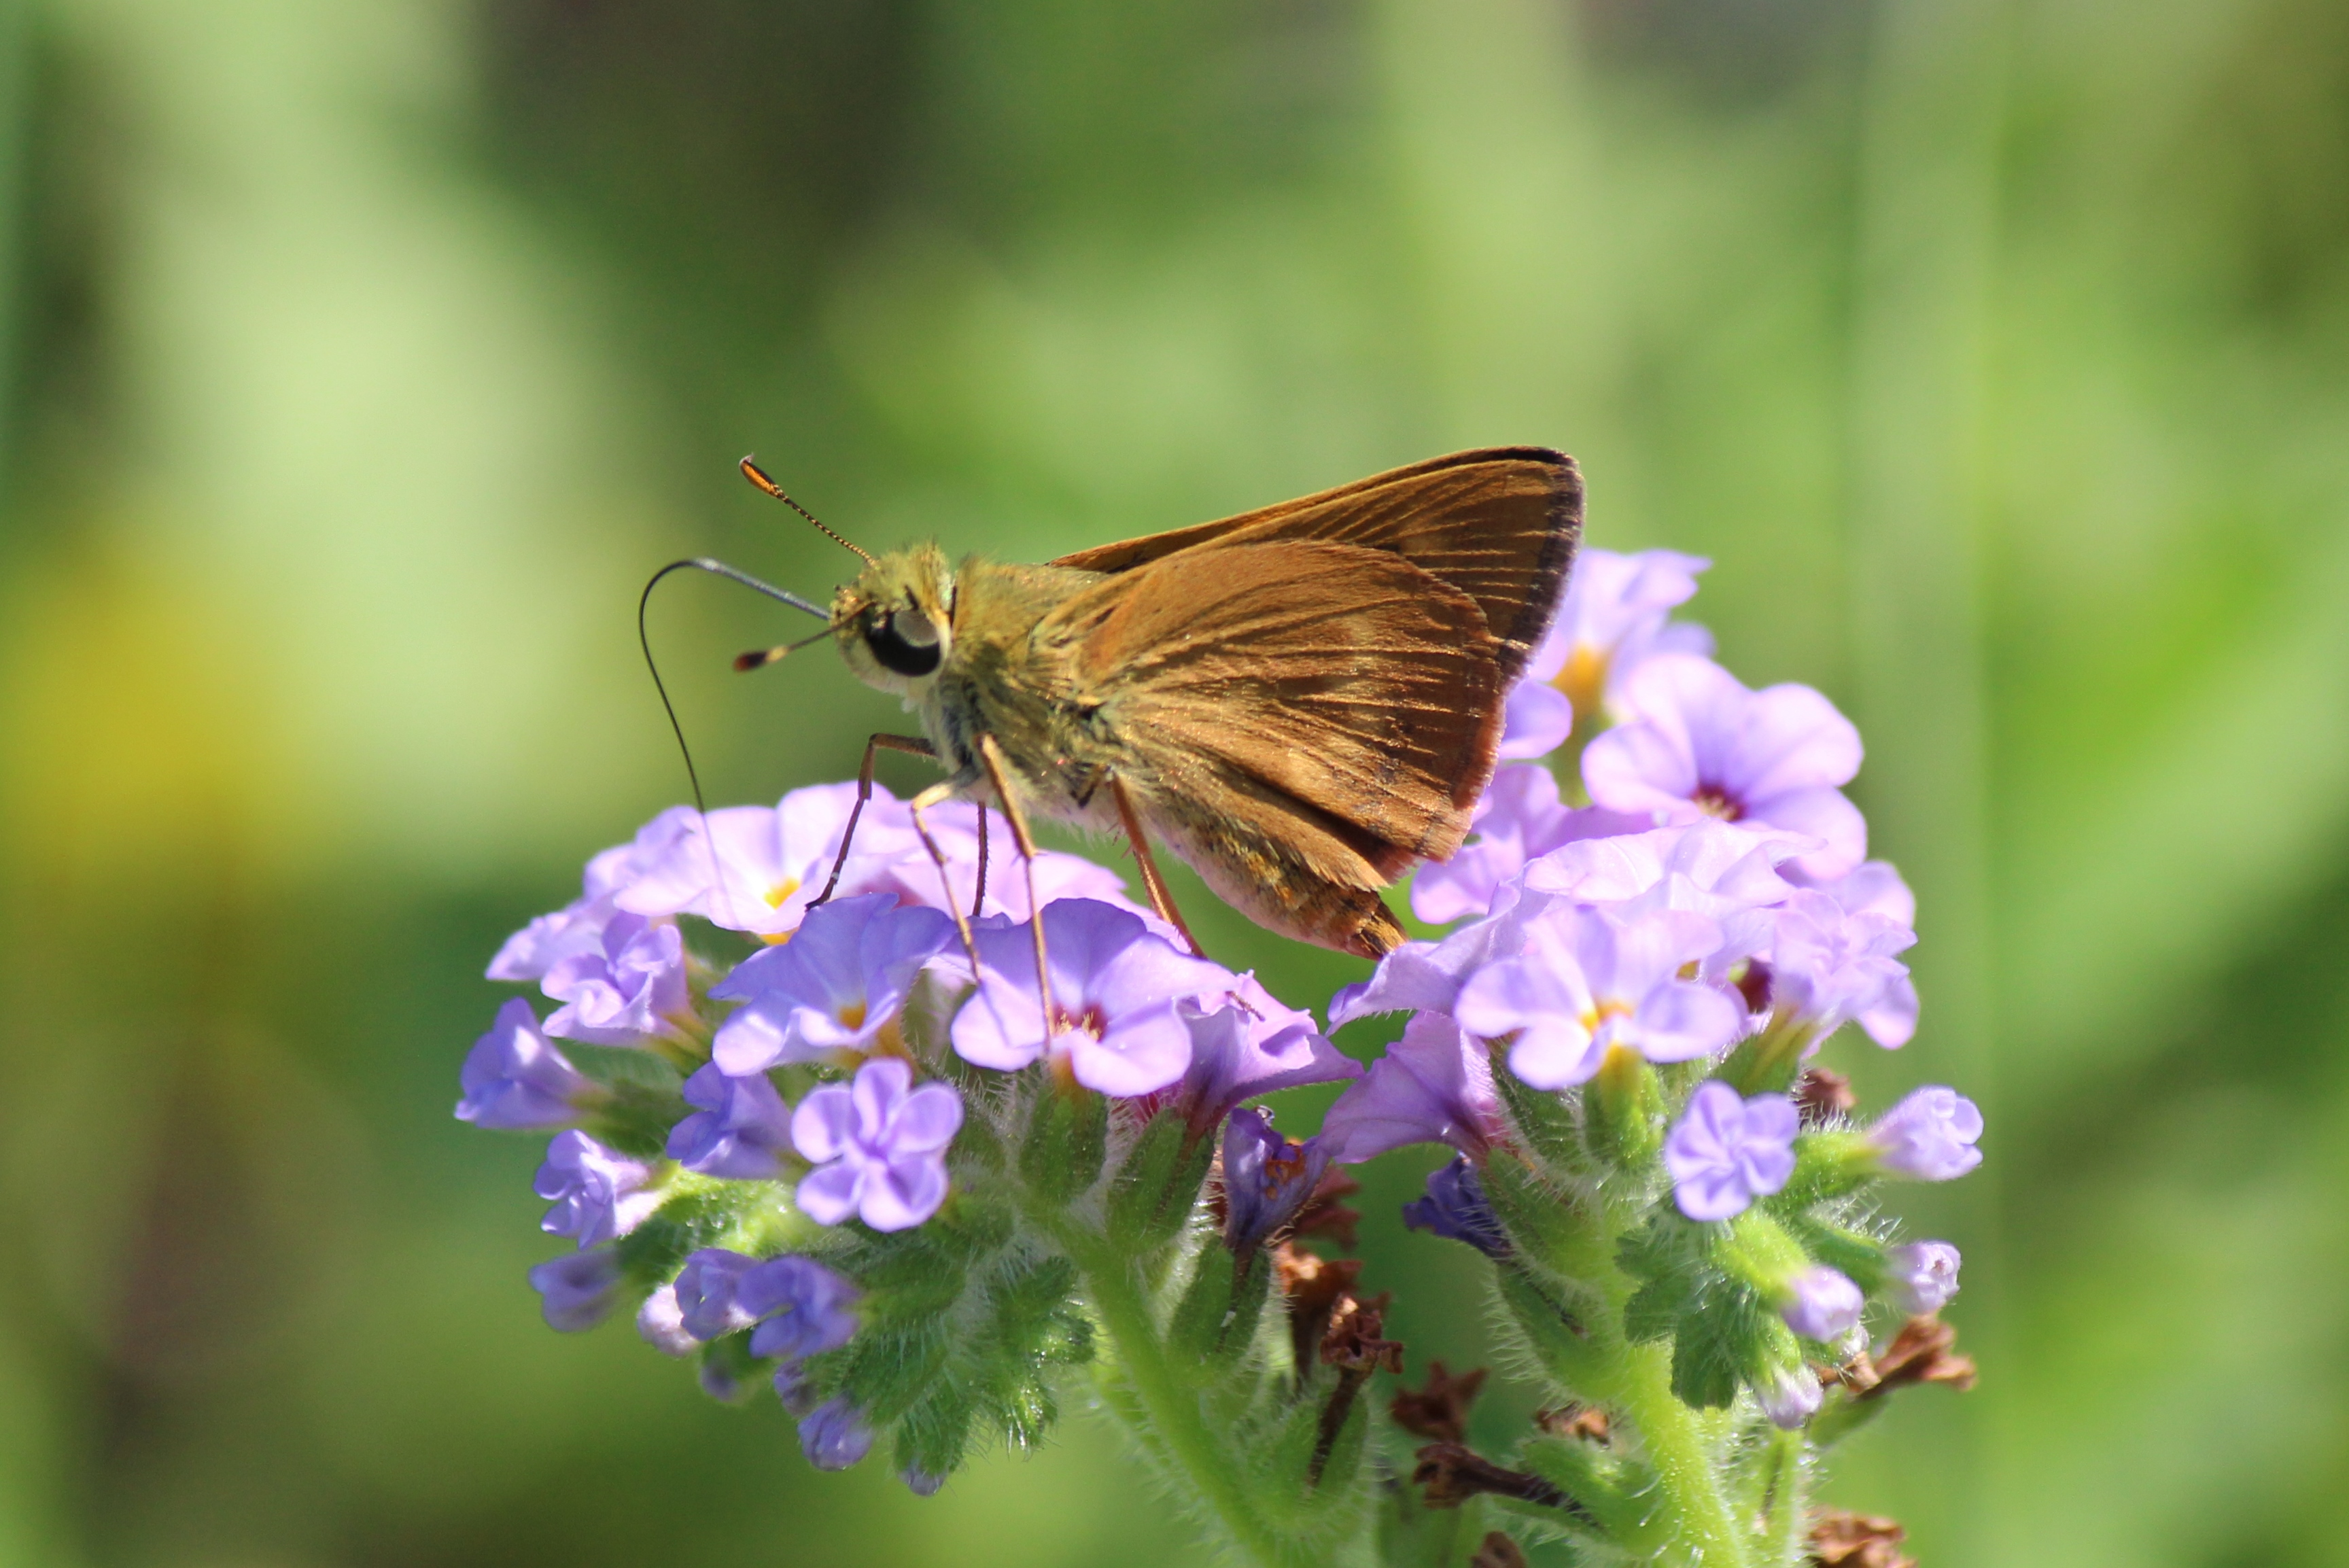 The Butterfly Company - Insects, Beetles, Moths, & Butterflies